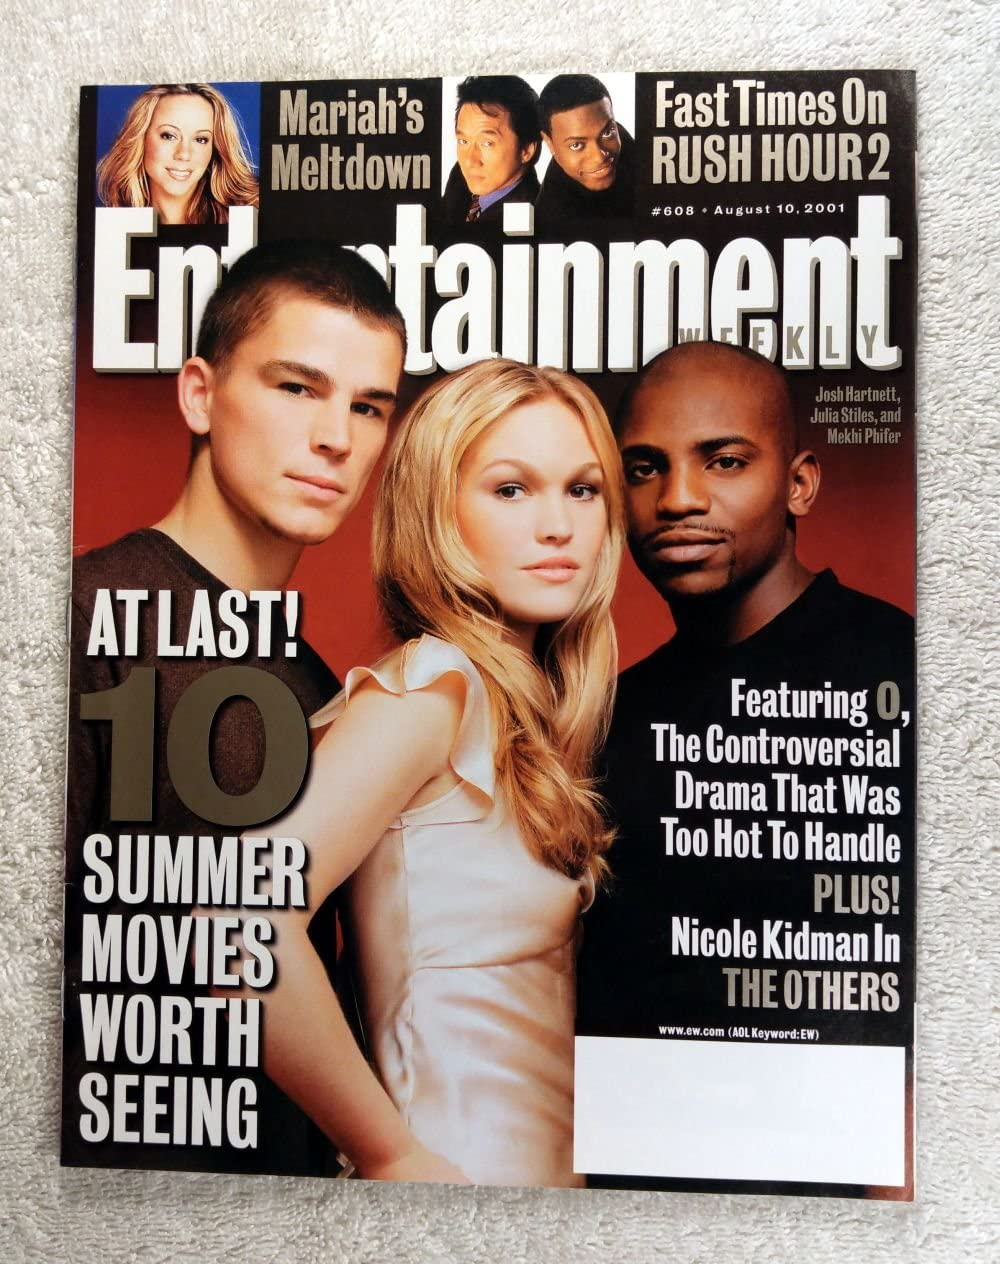 Josh Hartnett Julia Stiles Mekhi Phifer O The Controversial Drama That Was Too Hot To Handle Entertainment Weekly 608 August 10 2001 Rush Hour 2 Article At Amazon S Entertainment Collectibles Store